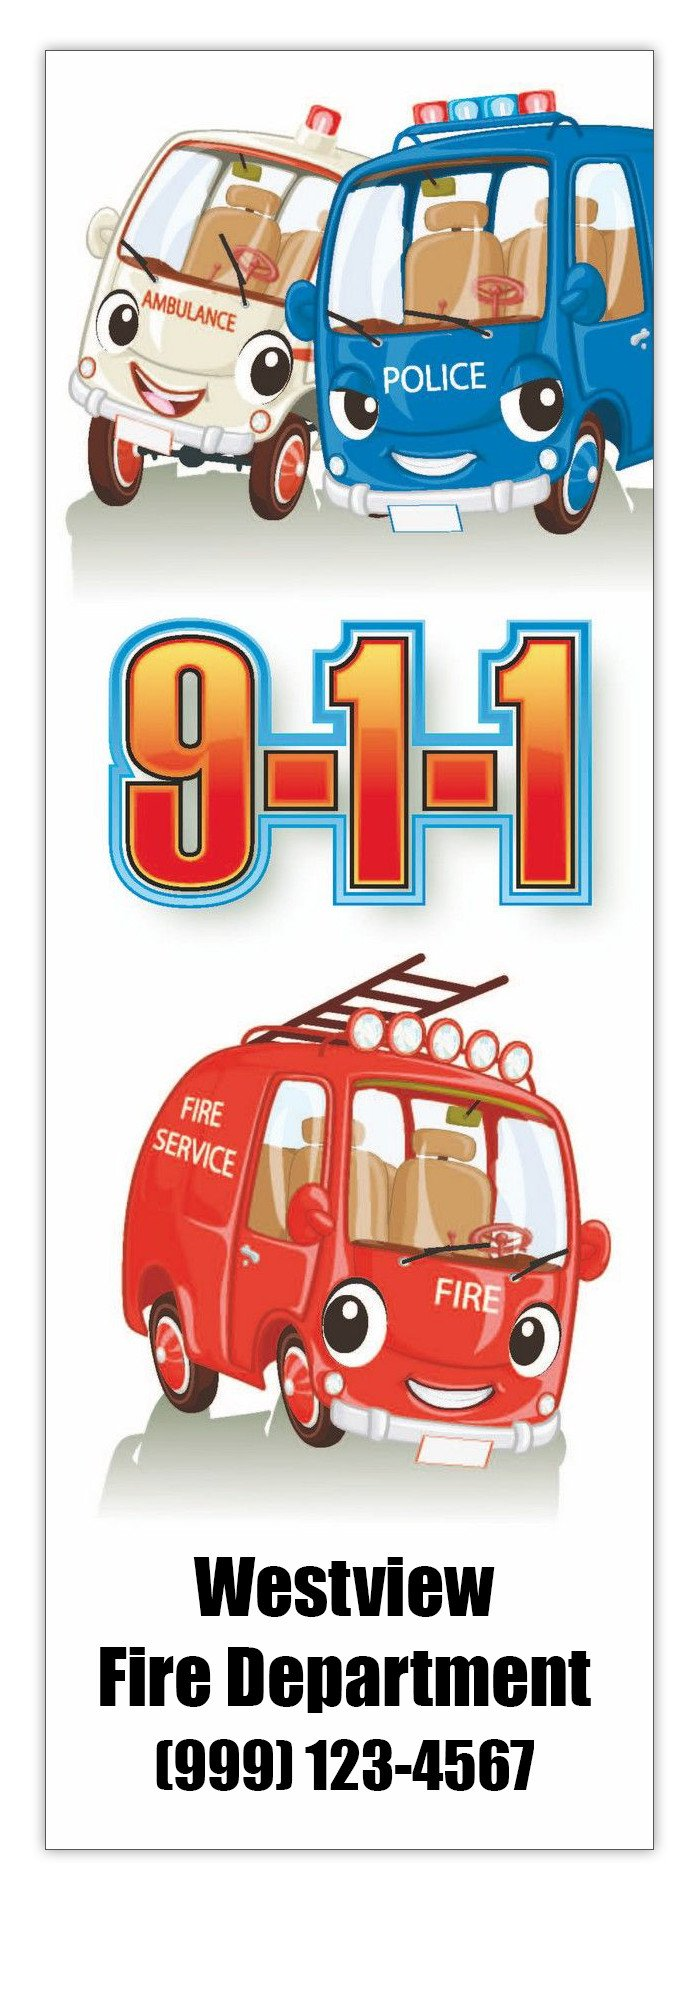 911 Bookmarks in Bulk (Qty of 250) - Promotional Item - Customize with your Information - Great for Mailings